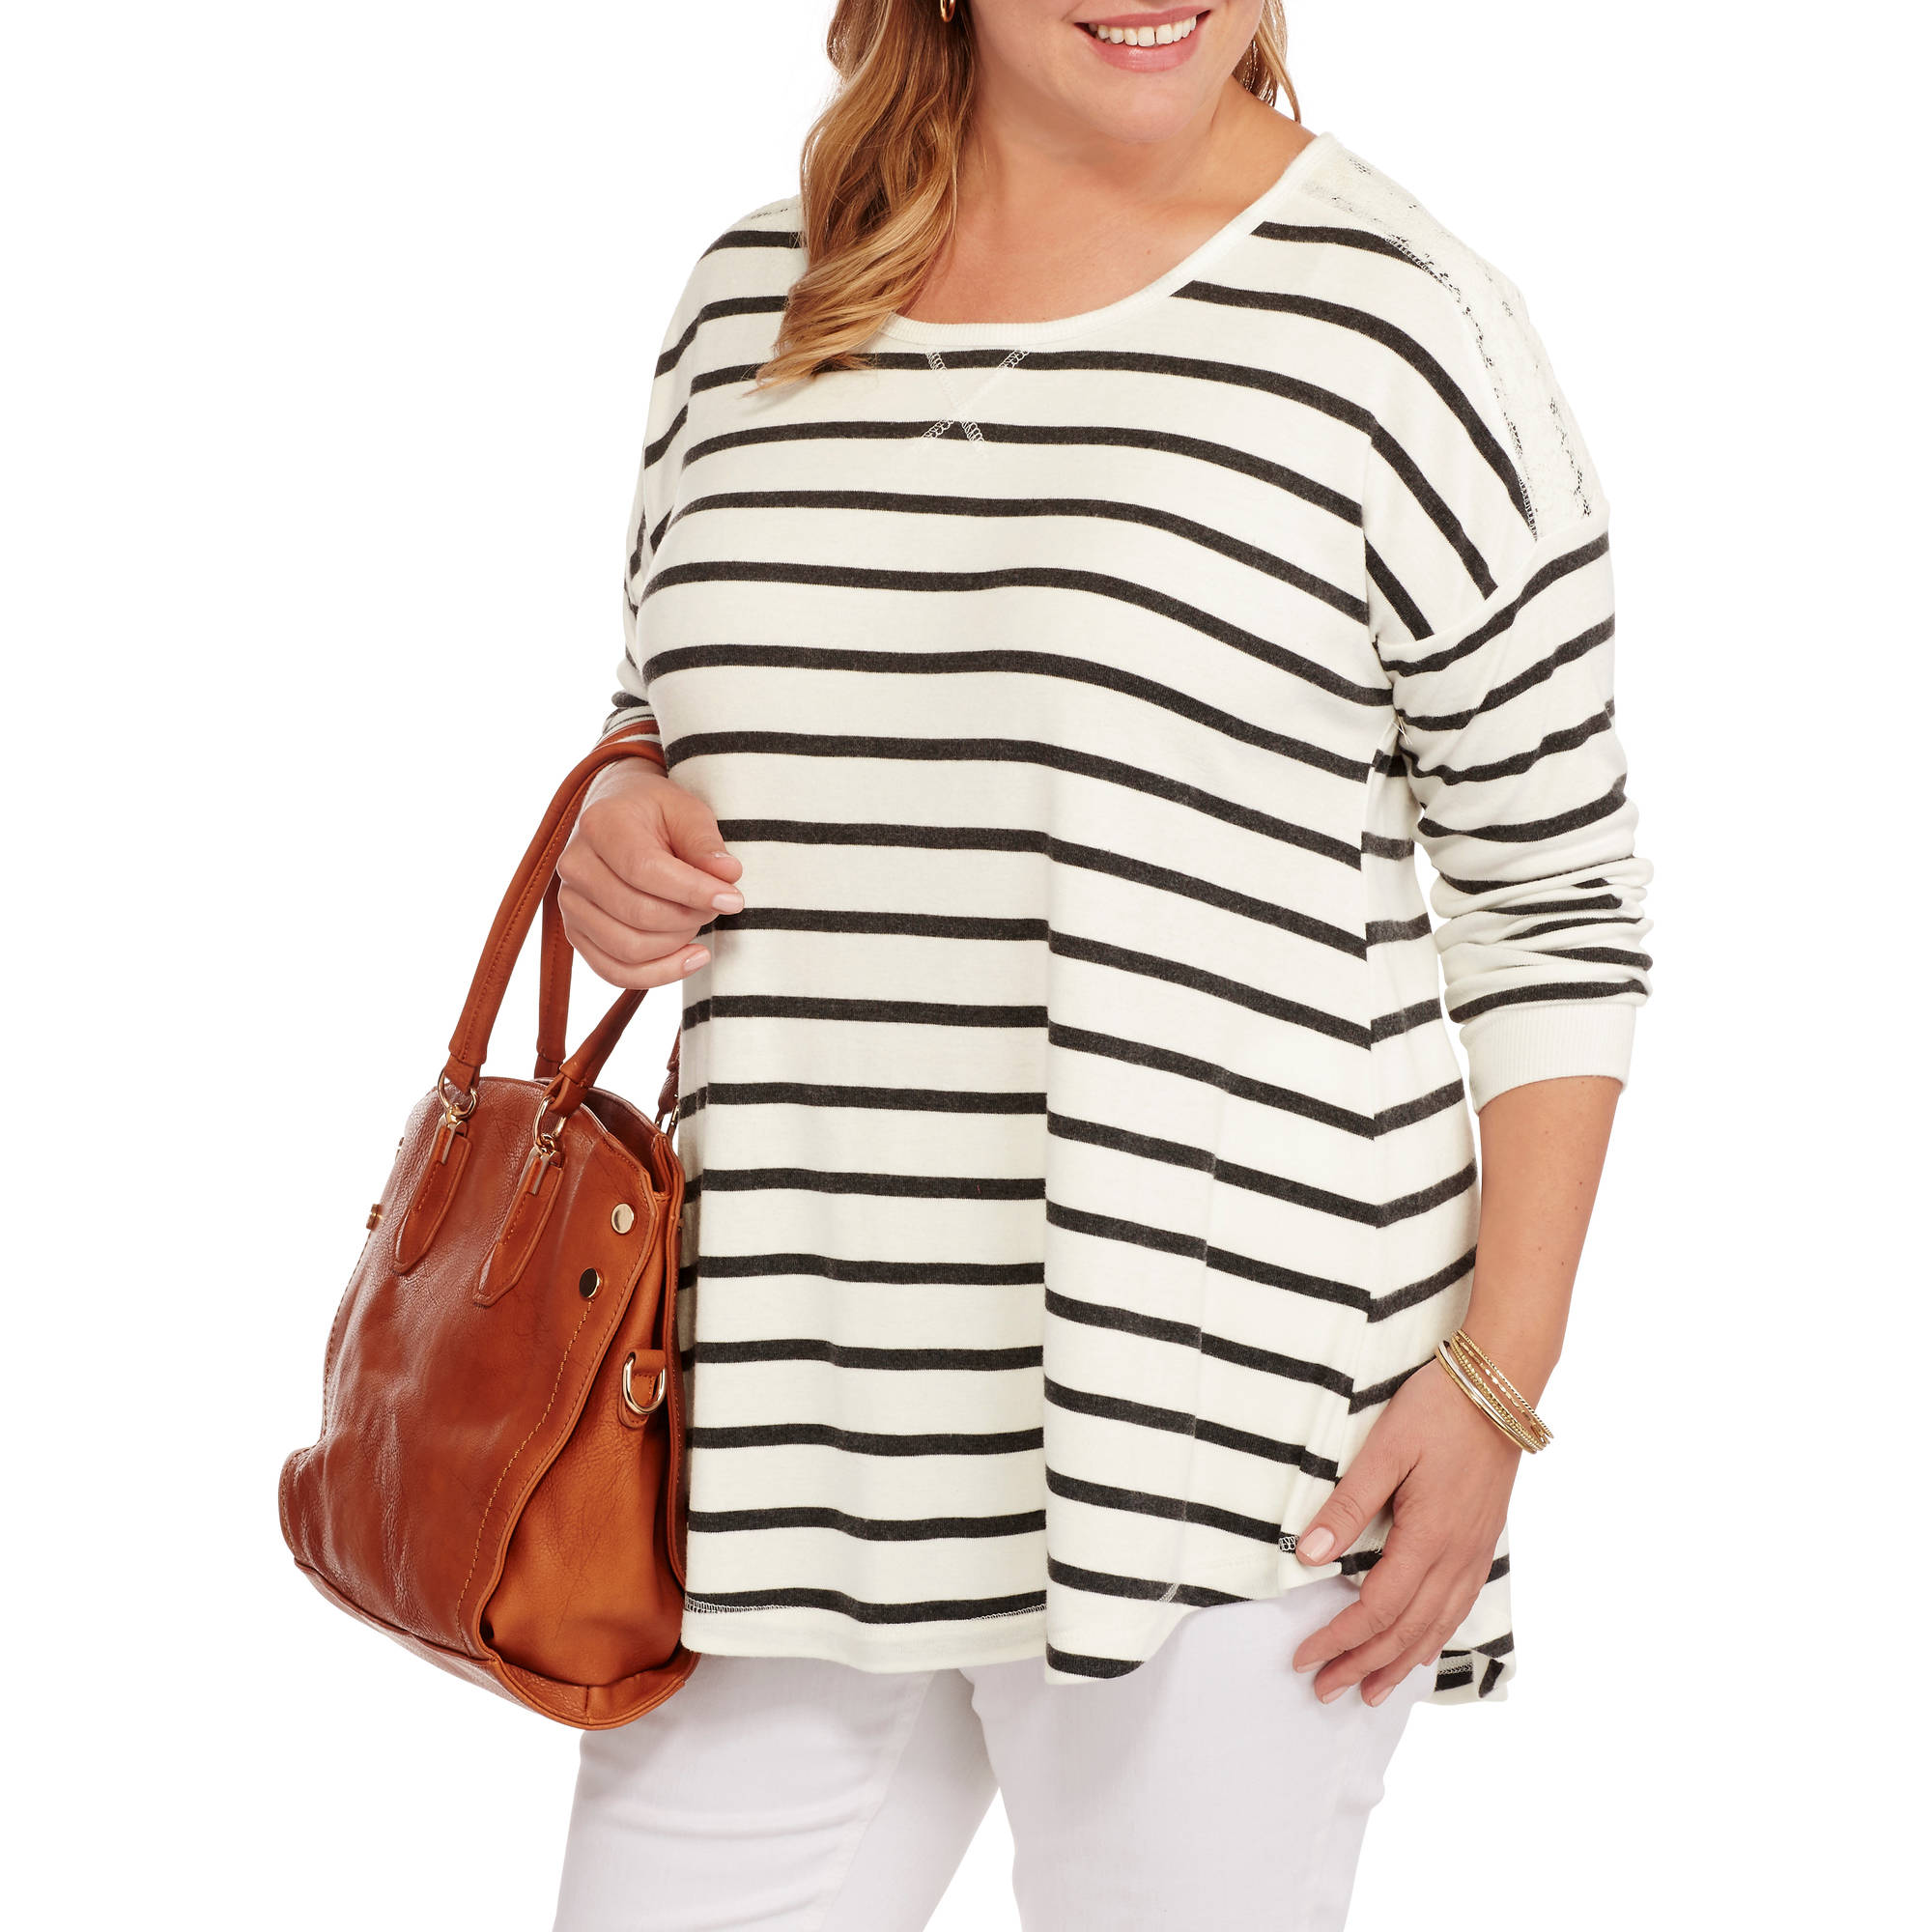 French Laundry Women's Plus Crew Neck Swing Top with Lace Trim